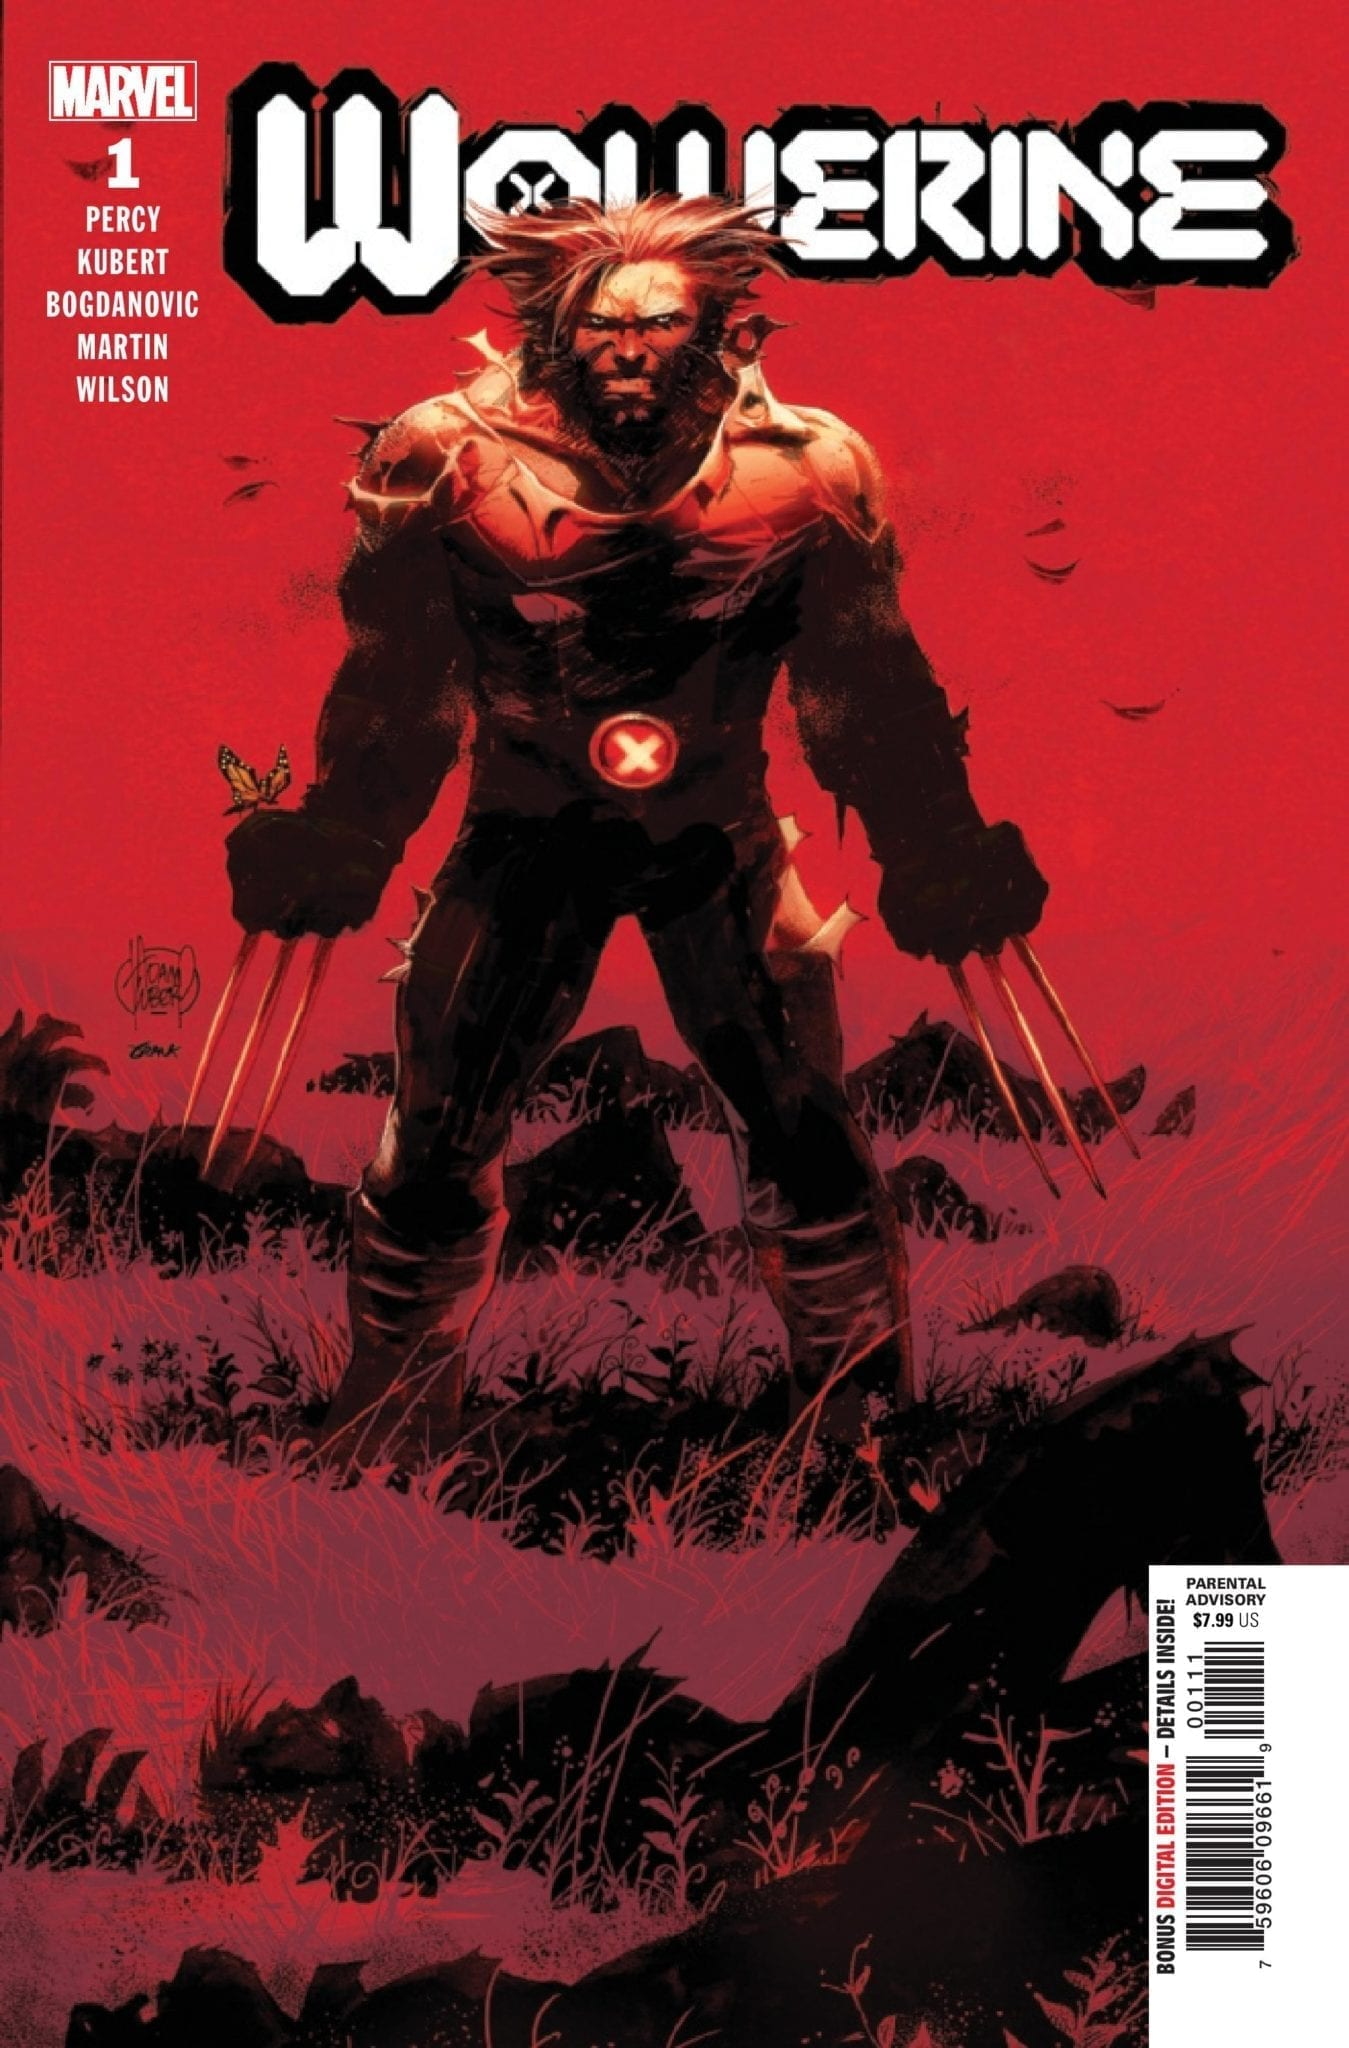 PREVIEW: WOLVERINE #1